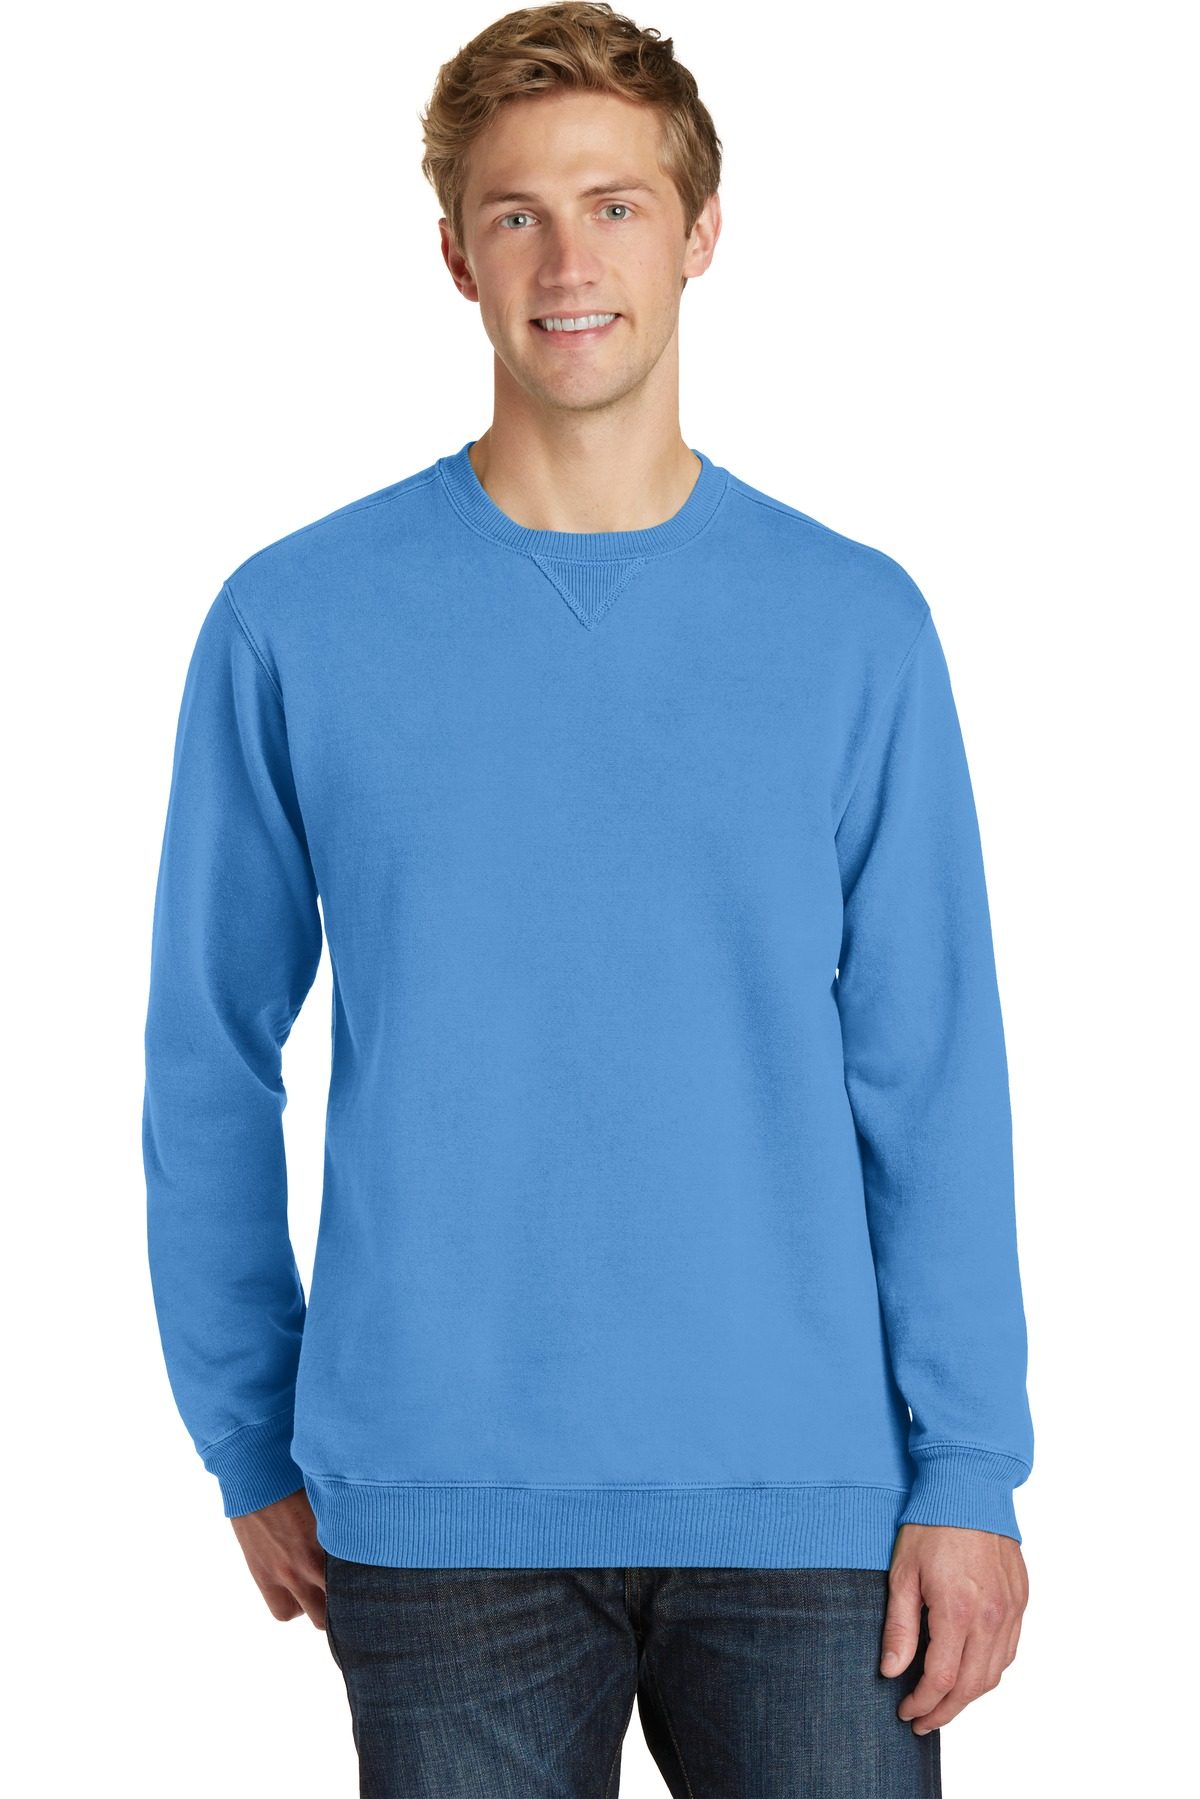 Port & Company ®  Beach Wash ™  Garment-Dyed Sweatshirt PC098 - Blue Moon